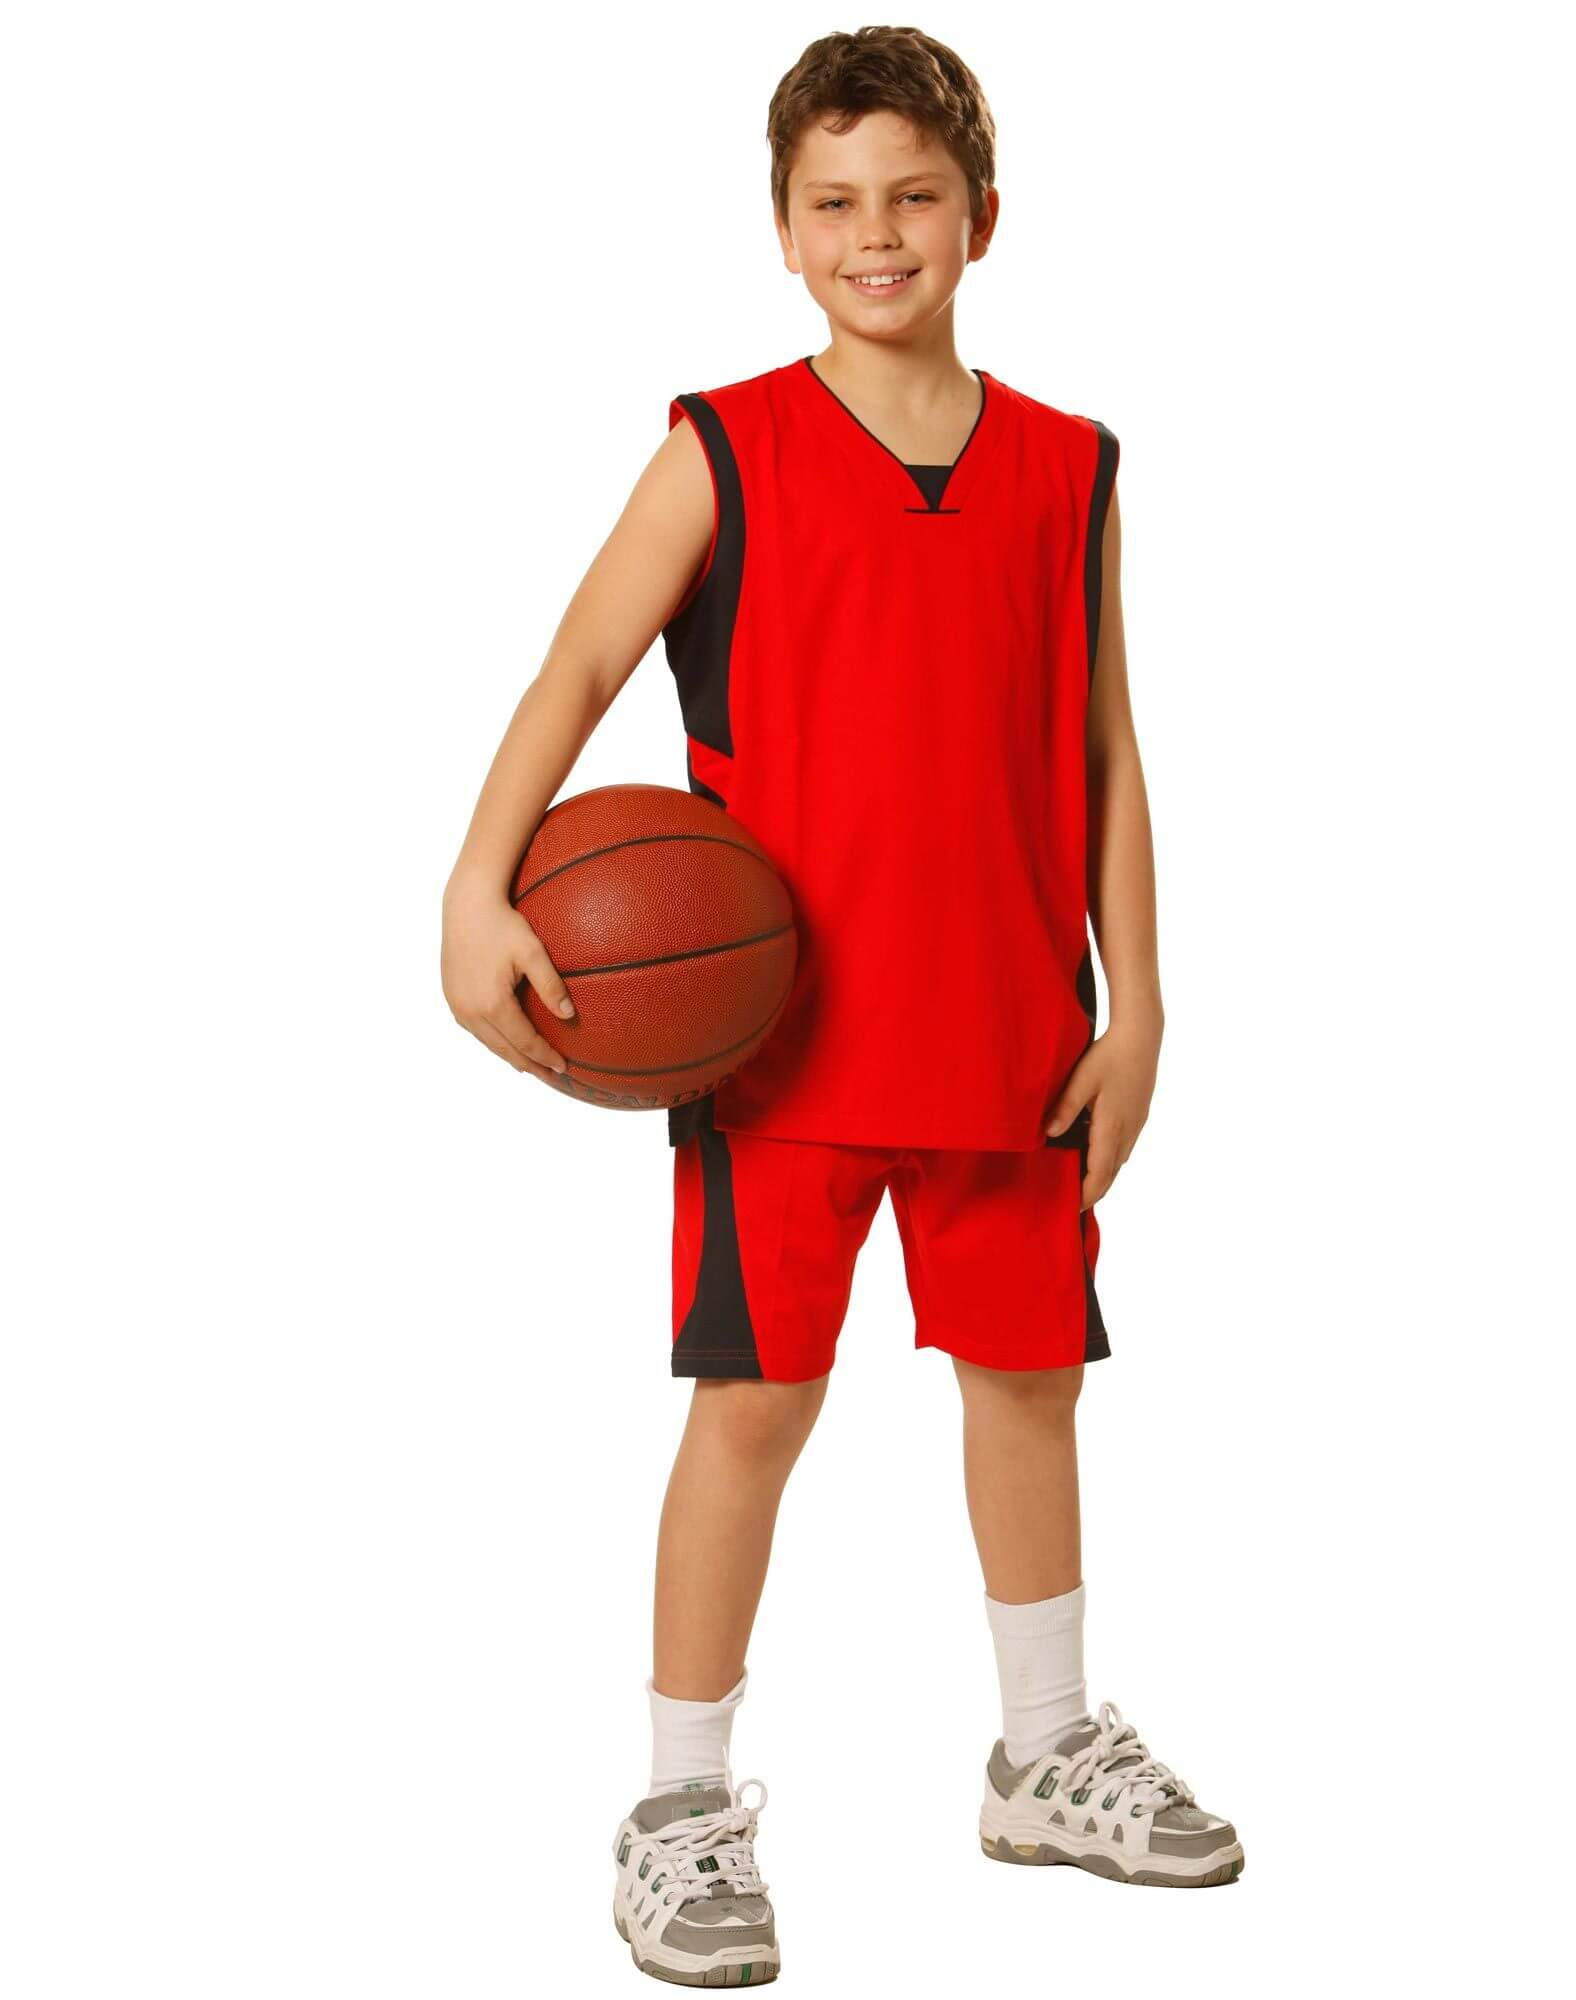 Kids Basketball Jerseys Manufacturers in Algeria